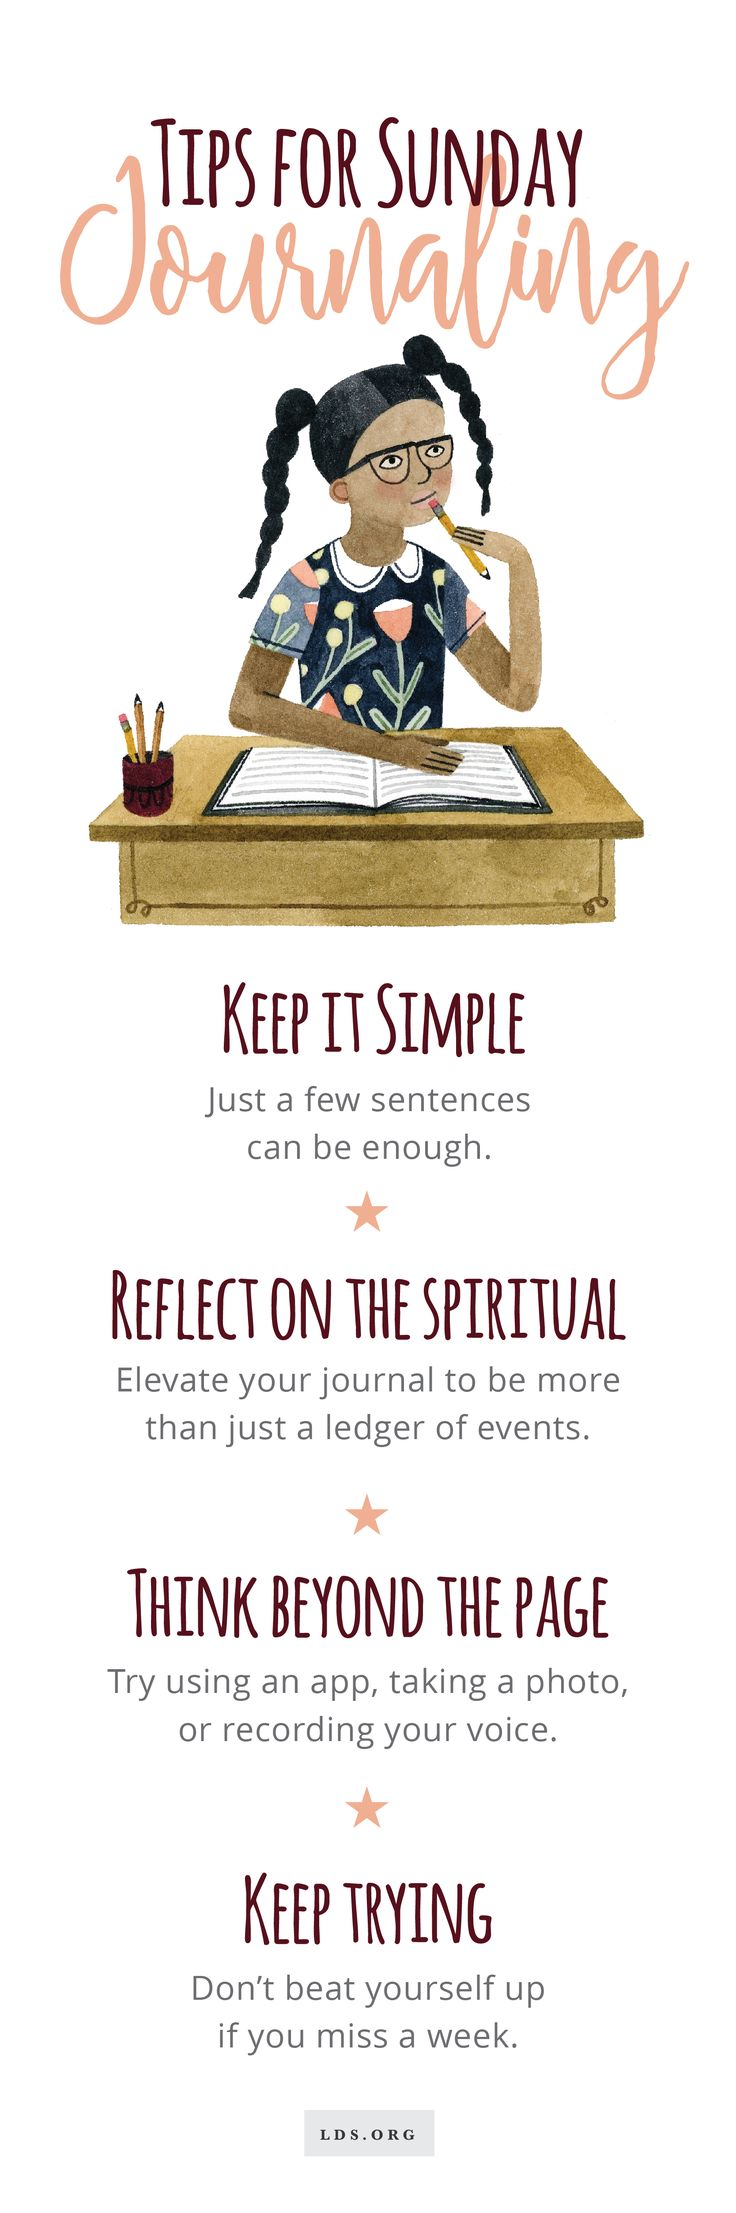 The Beginner's Guide to Sunday Journaling #LDS